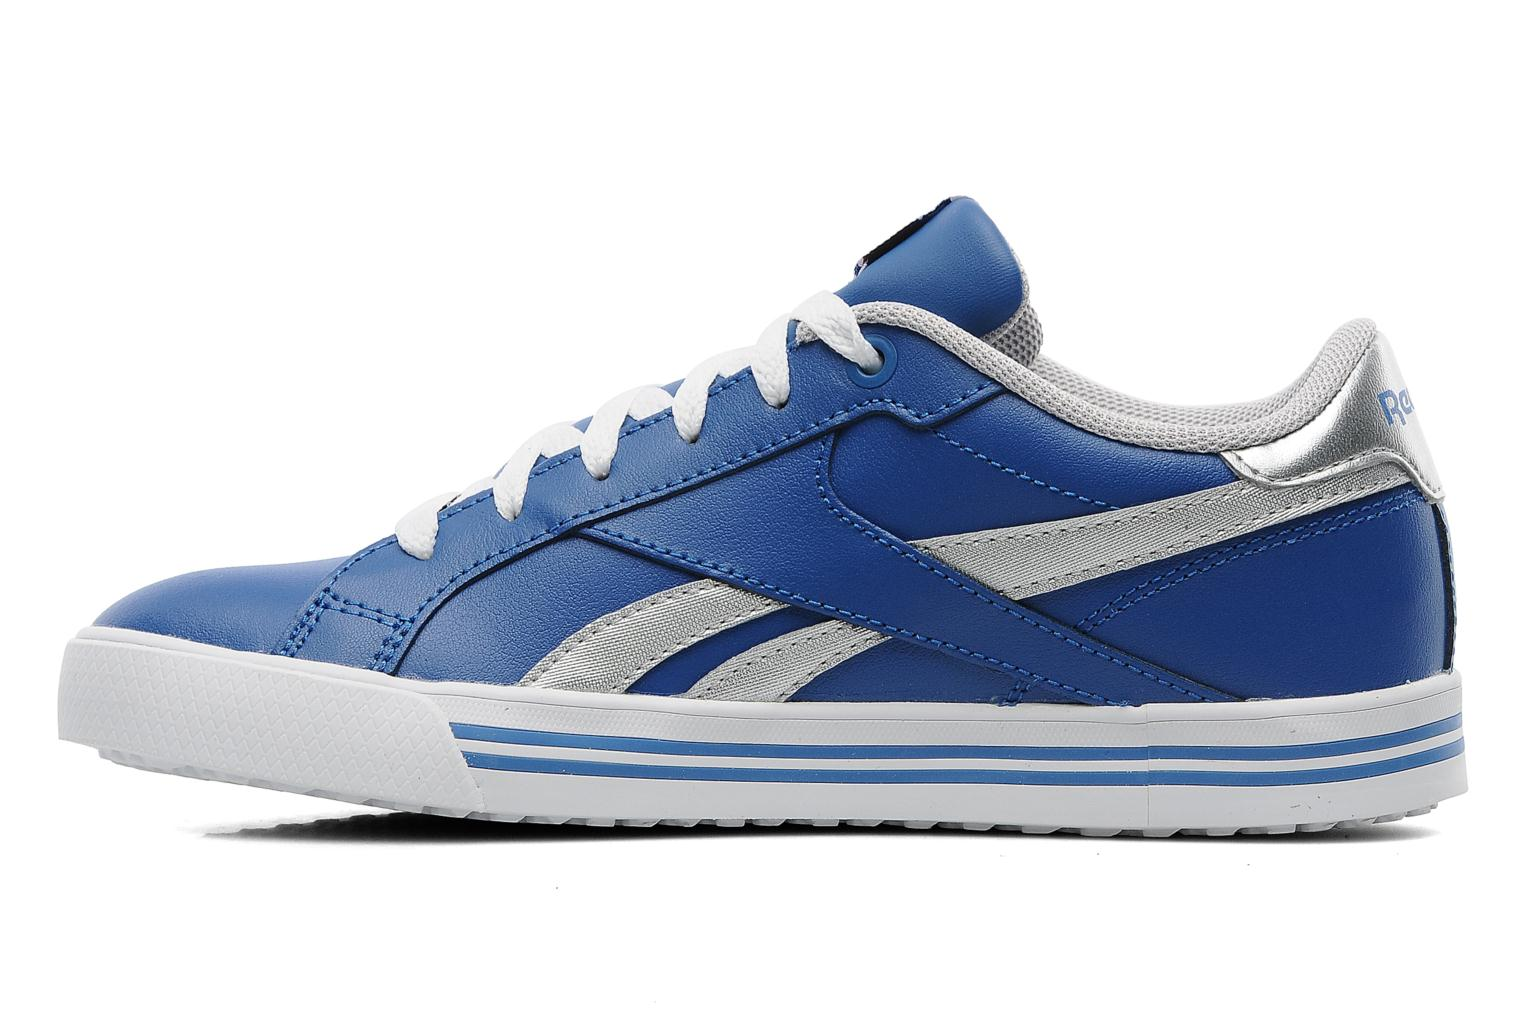 reebok reebok royal complete low trainers in blue at 193580. Black Bedroom Furniture Sets. Home Design Ideas